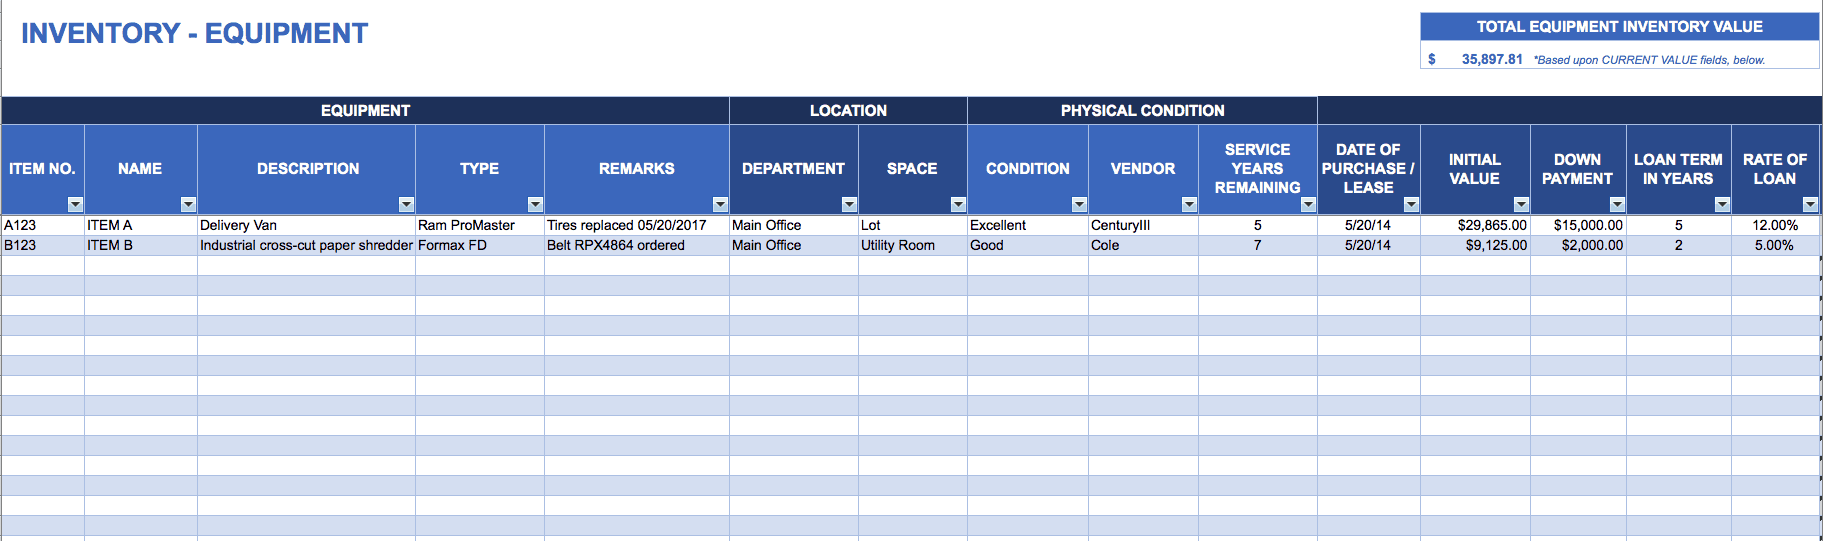 Equipment Inventory Template  Inventory Worksheet Template